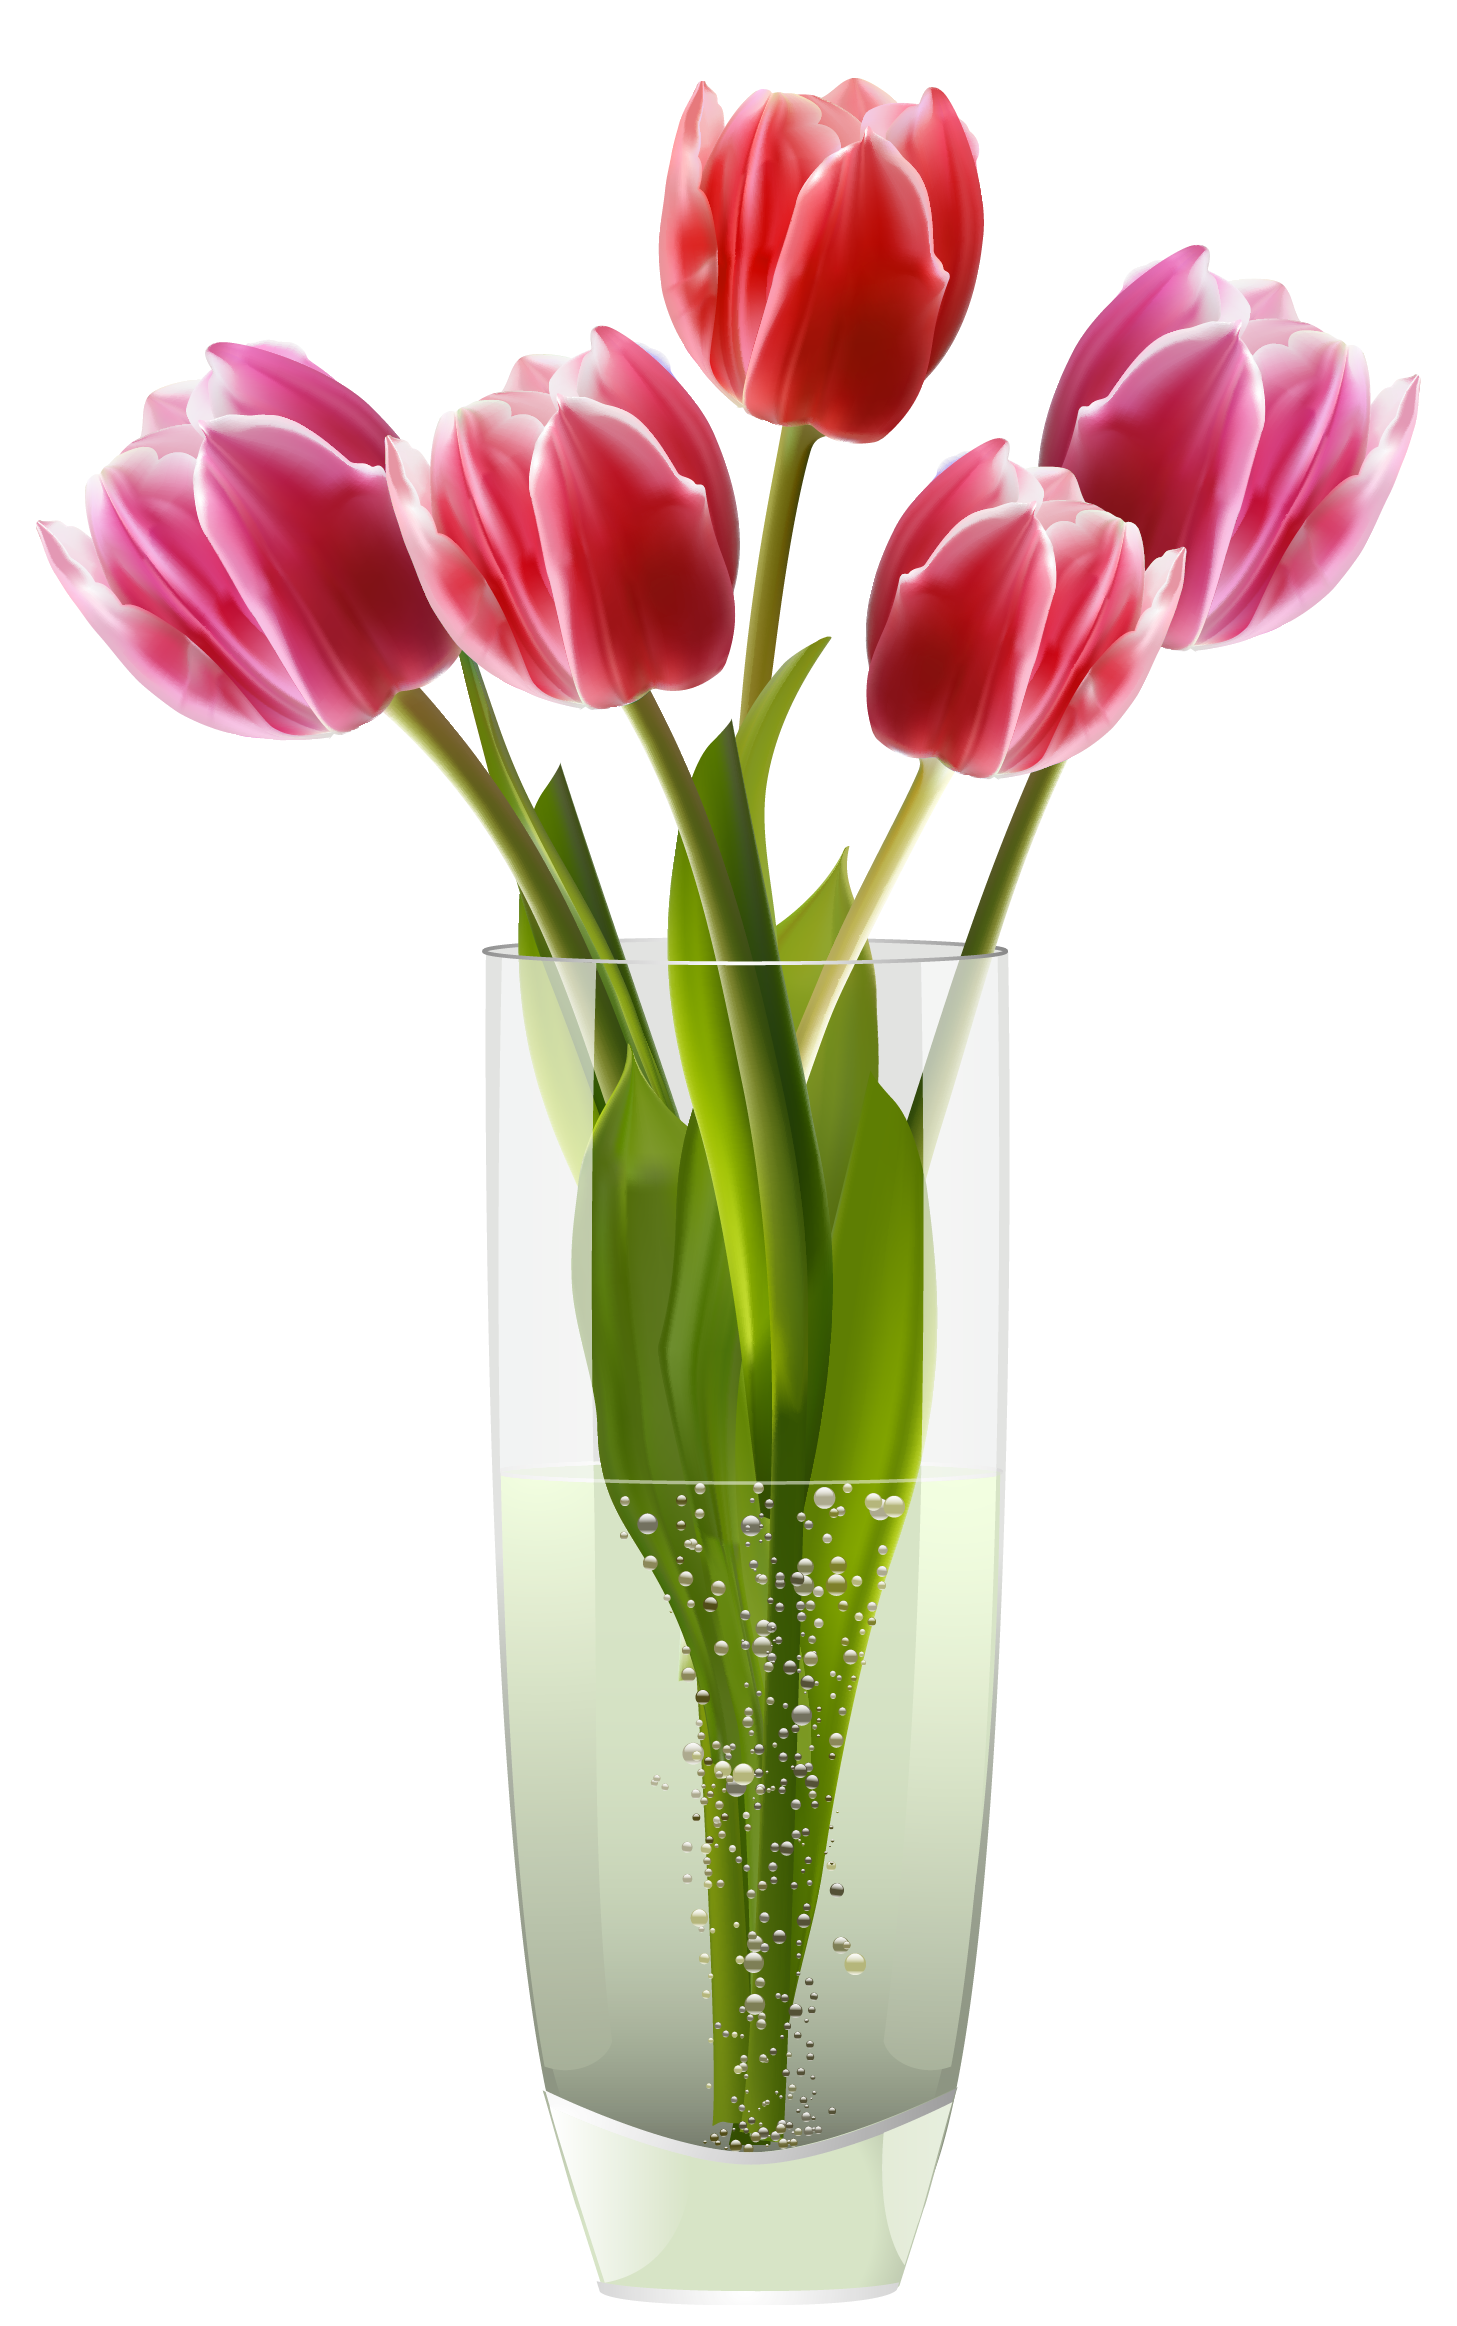 Flower vase png. Pink red tulips clipart